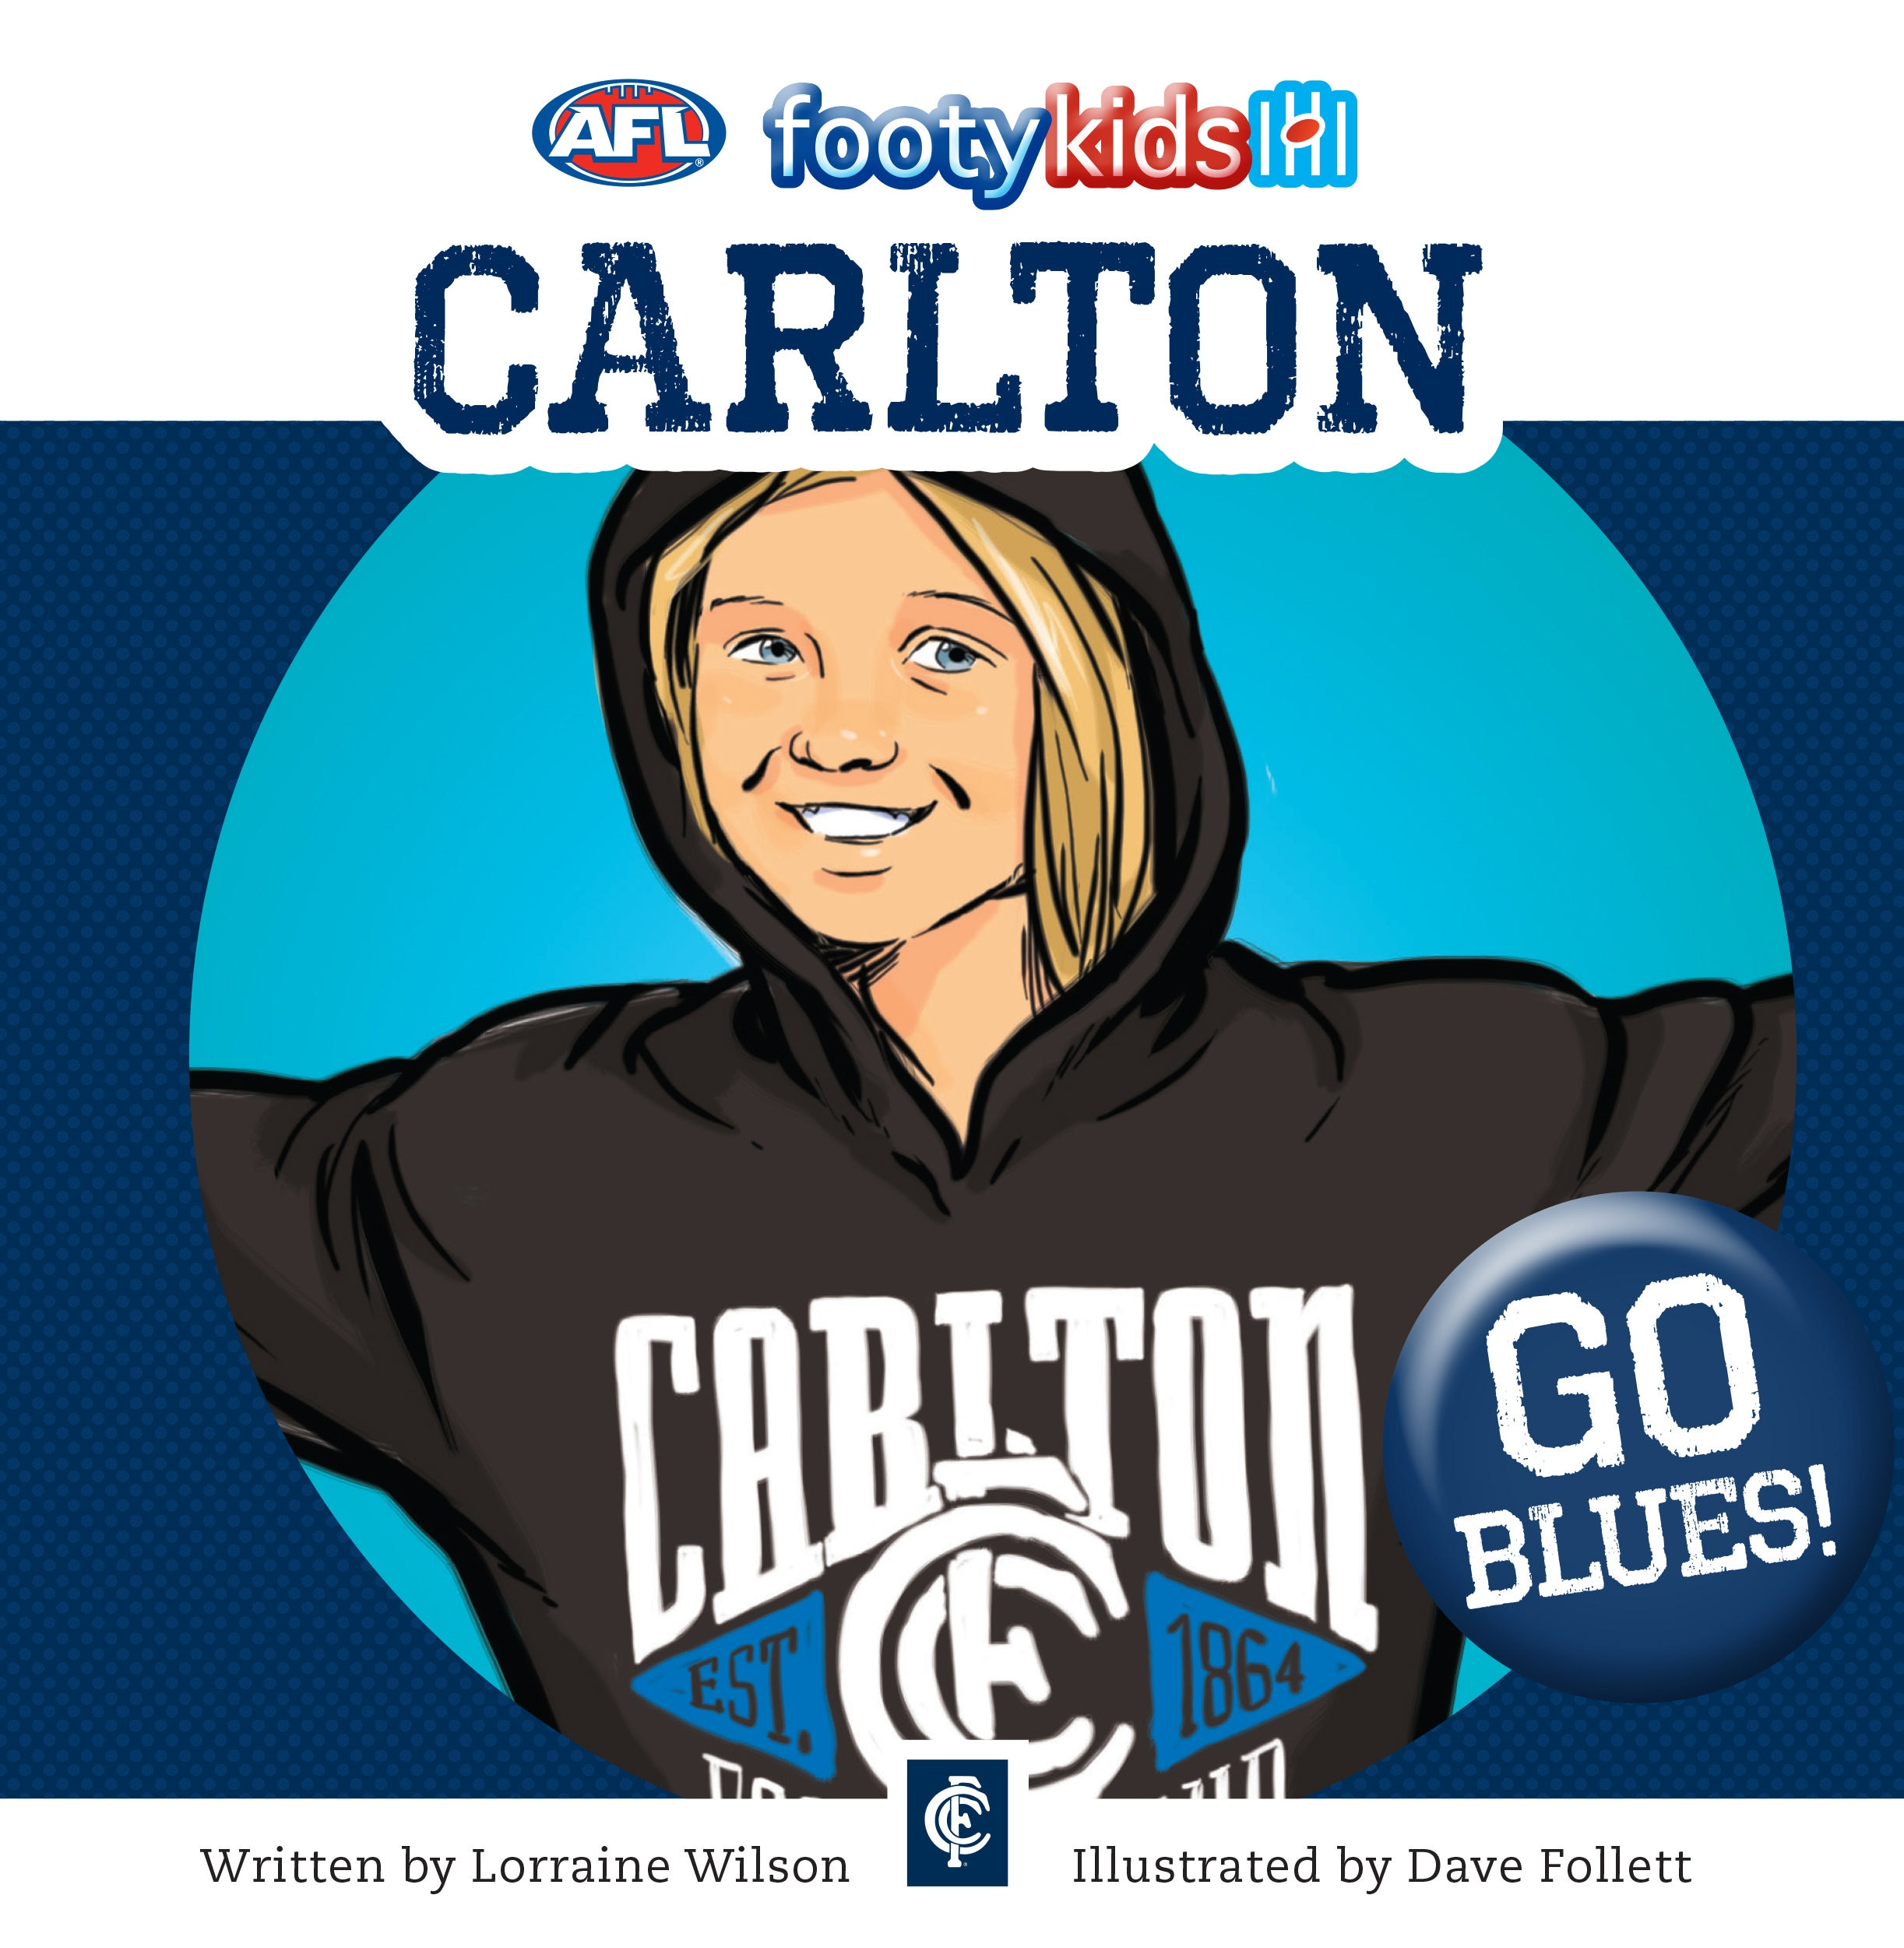 AFL: Footy Kids: Carlton